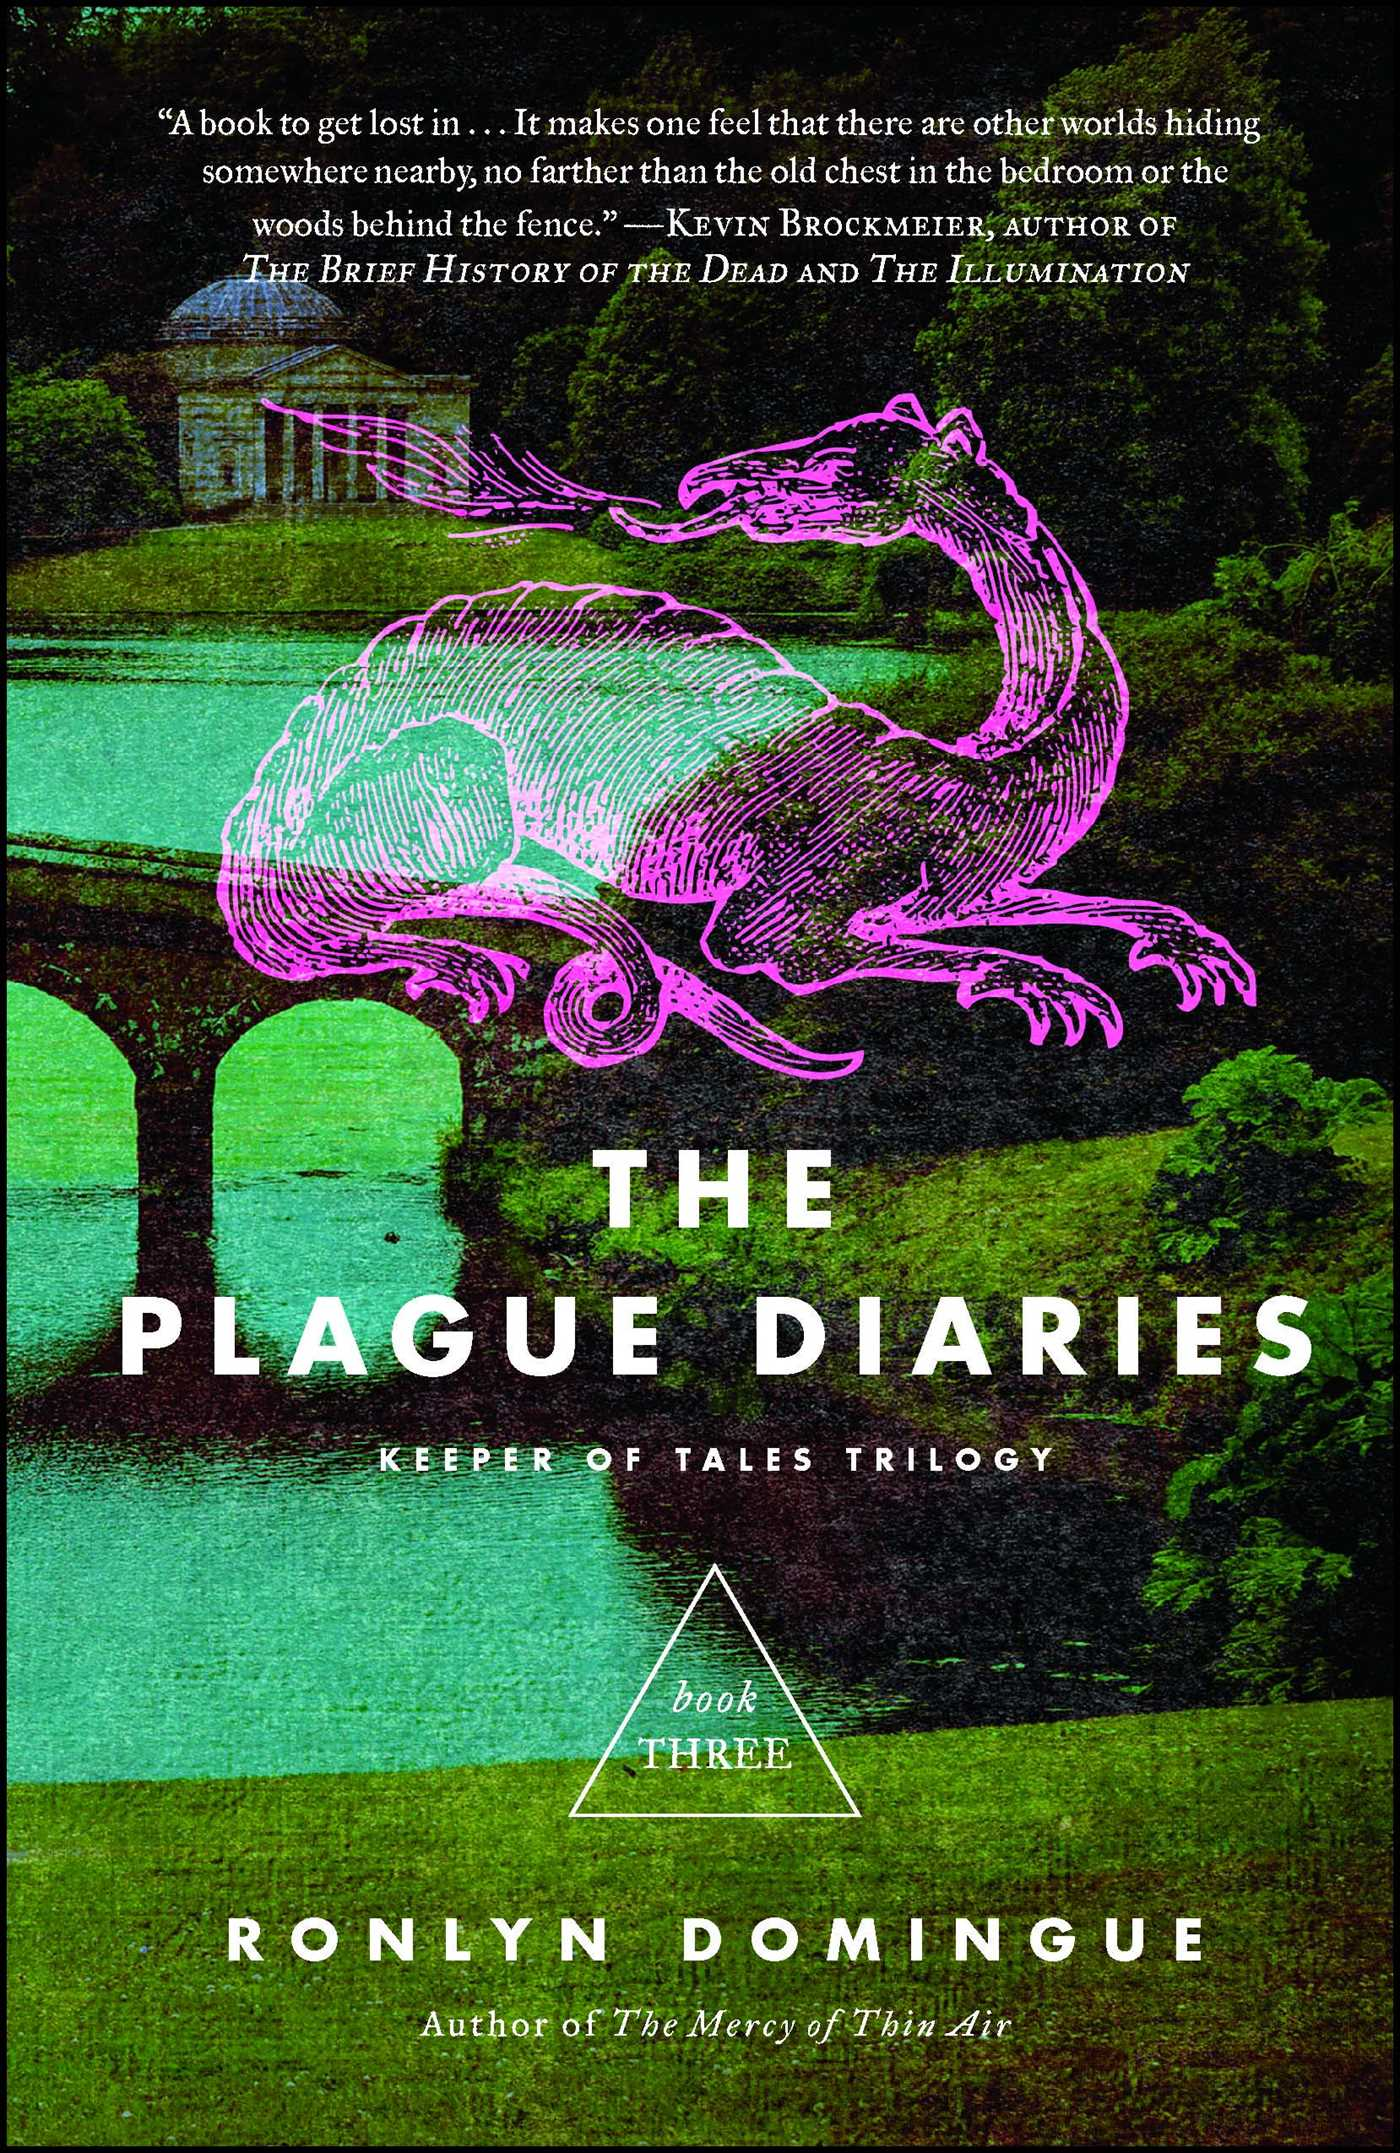 The plague diaries 9781476774305 hr